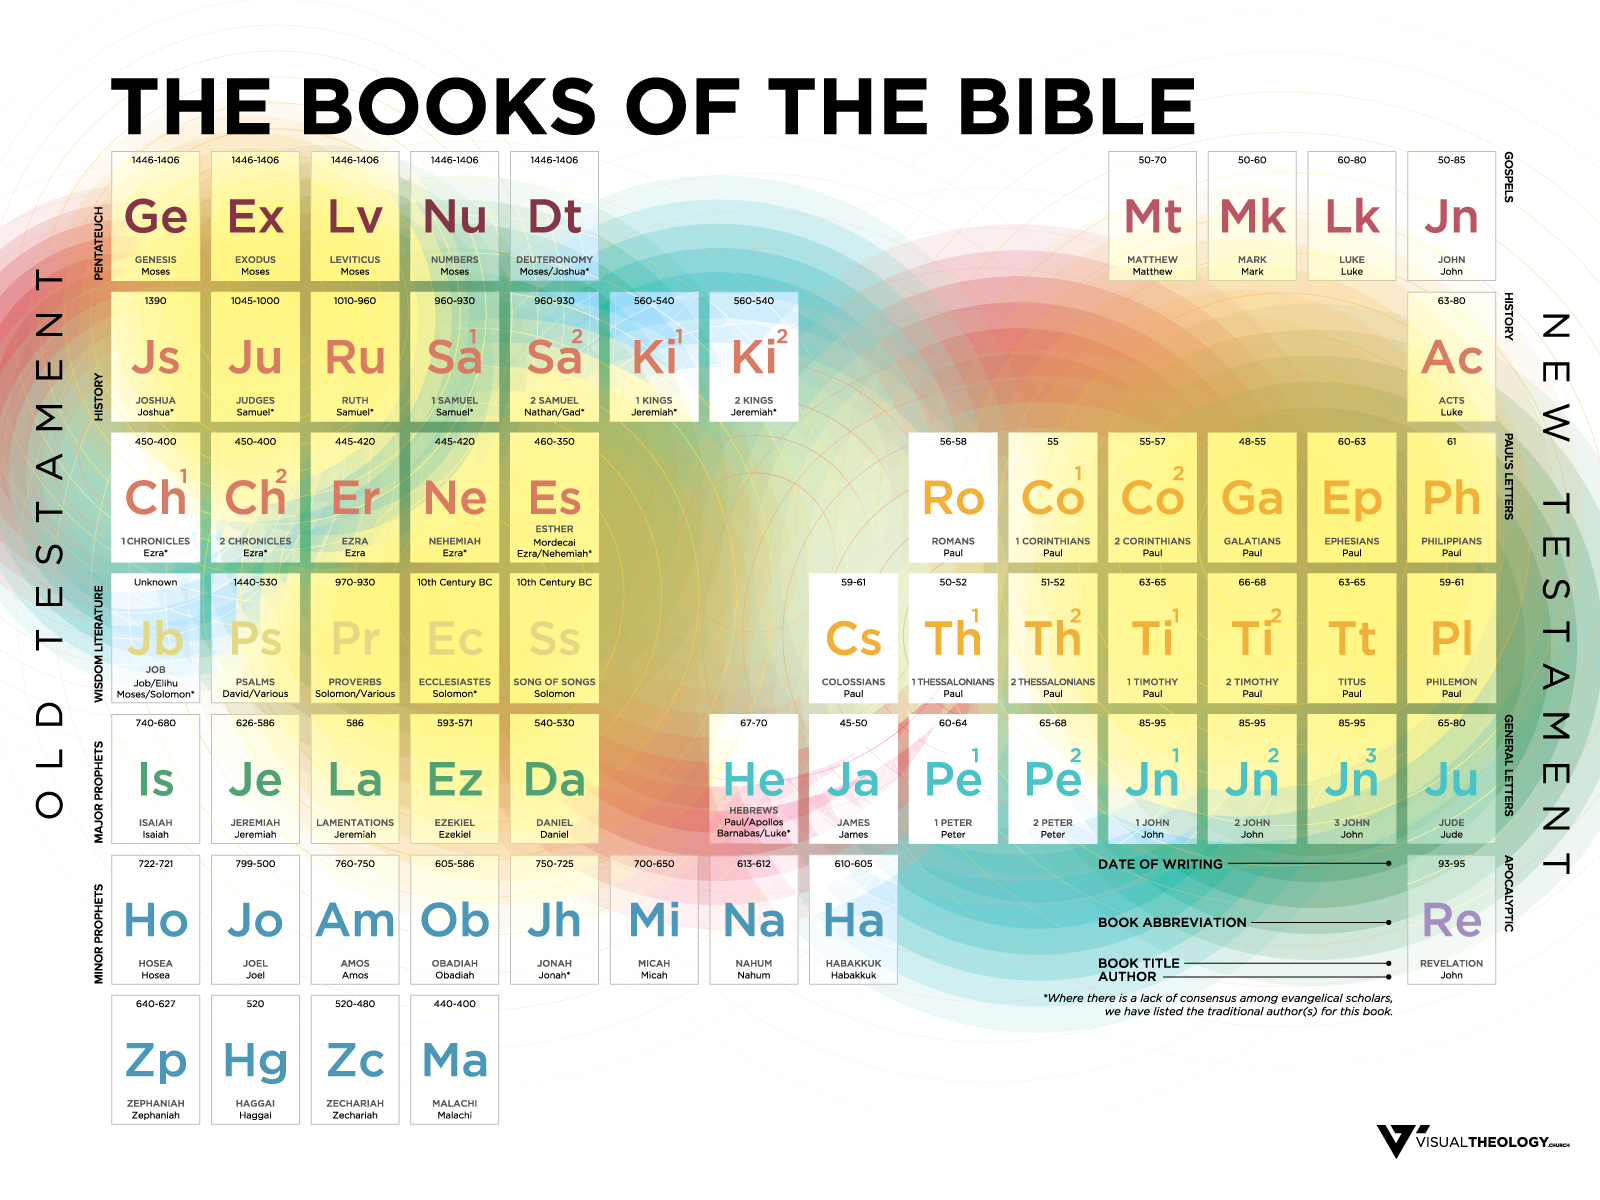 Books of the bible visual theology get the free version of the books of the bible gamestrikefo Images